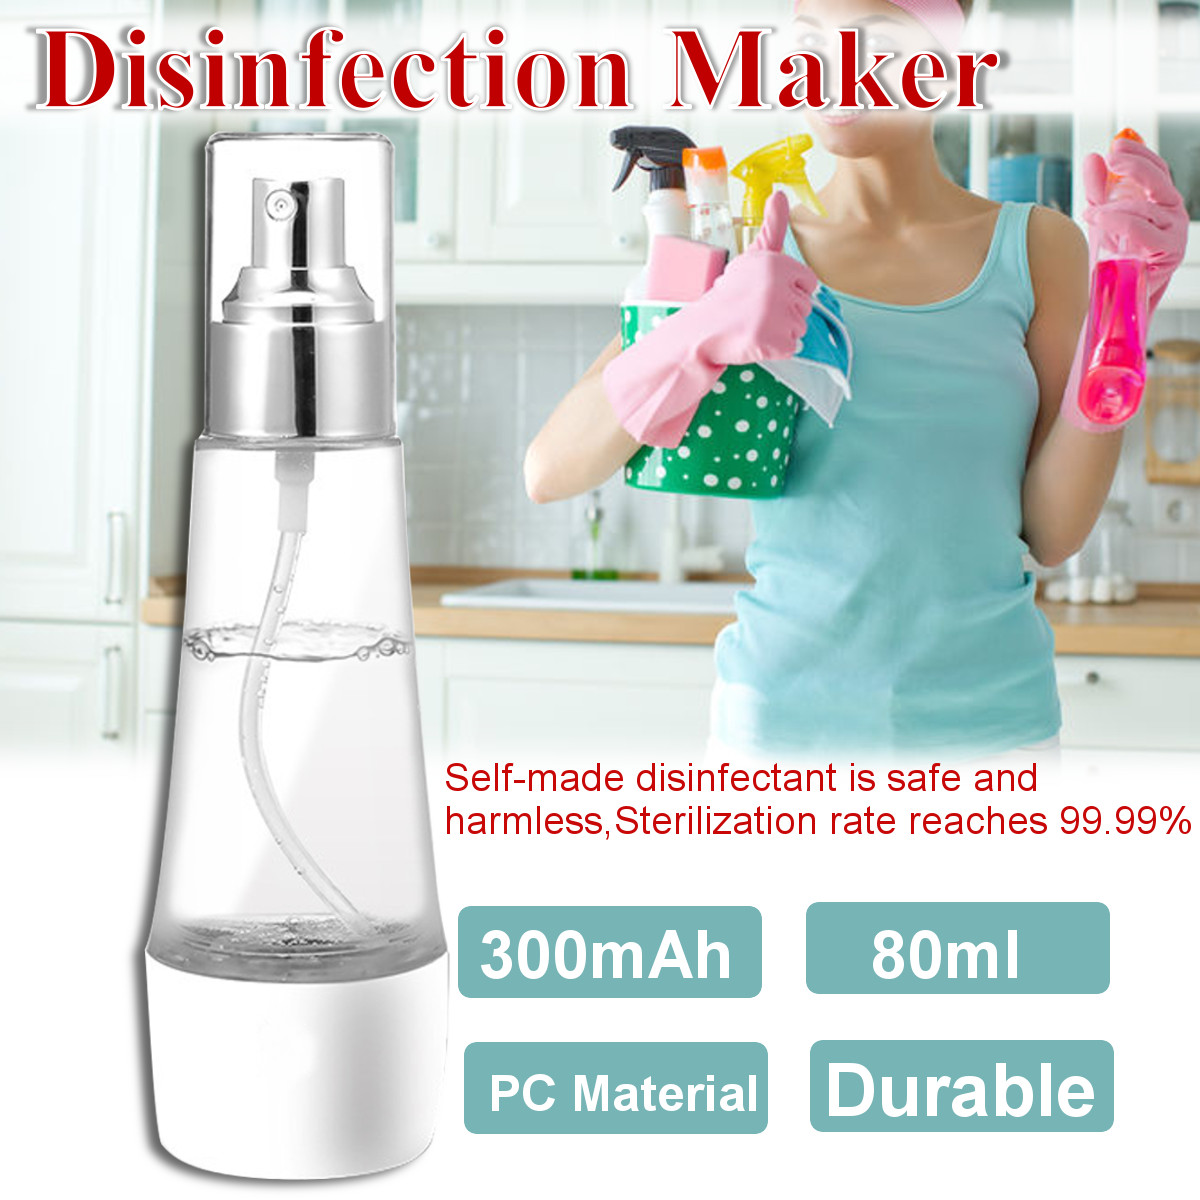 Electric Disinfectant Spray Maker Make your own disinfectant water USB sprays spraying Sprayer's Sprayer rechargeable battery recharge Portable making Maker's Machines Machine Liquid homeware Homemade Home Generator For electrical electric disinfection disinfectants disinfect bottles bottled bottle 80ml